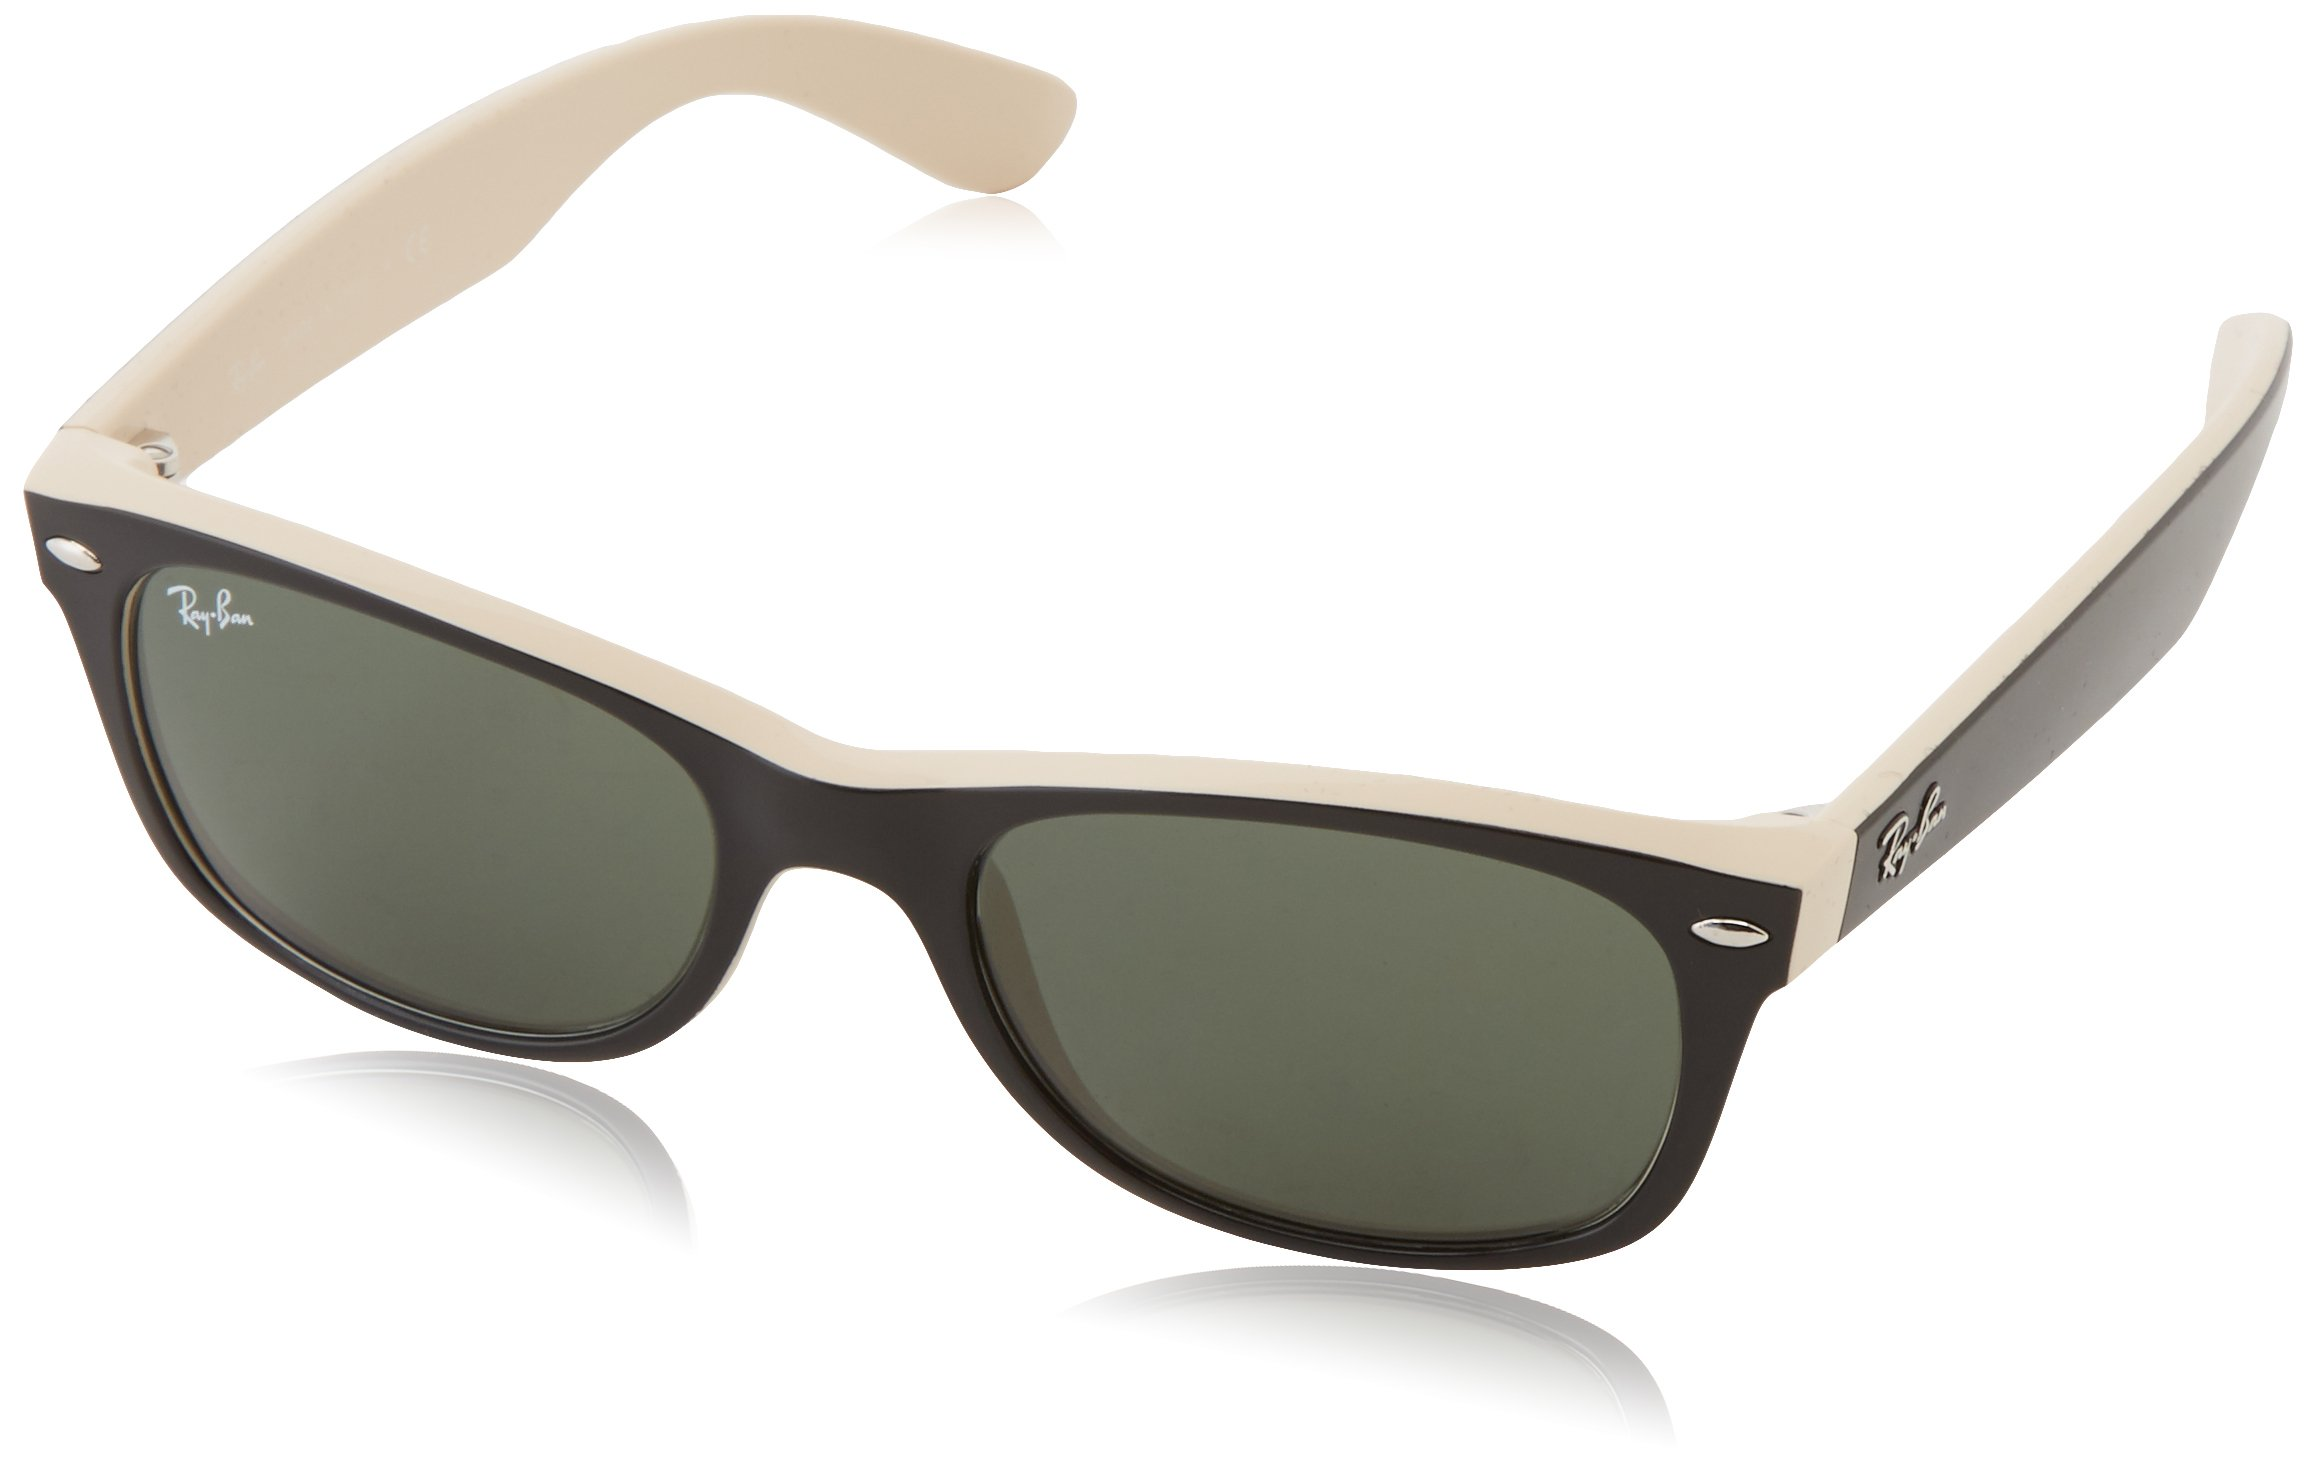 RAY-BAN RB2132 New Wayfarer Sunglasses, Black On Beige/Green, 52 mm by RAY-BAN